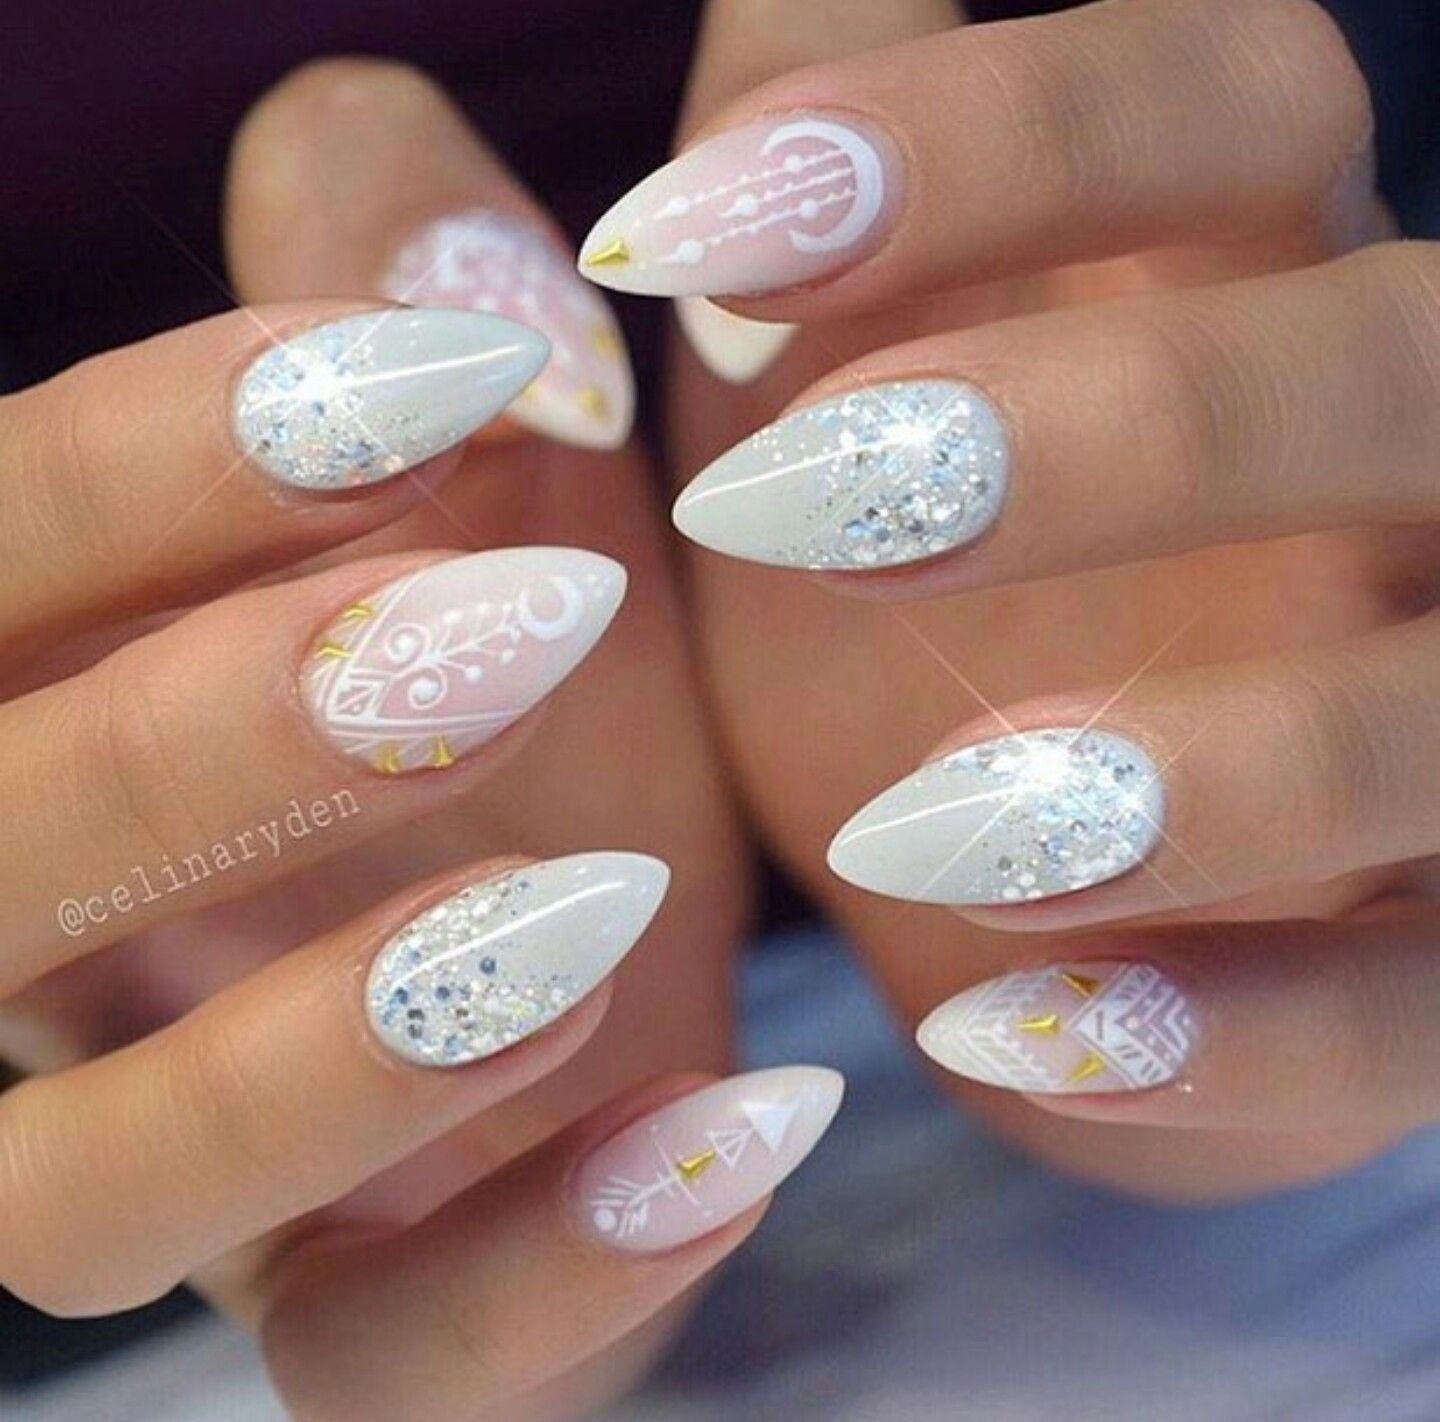 Pin By Linzie Jans On Nail Art Pinterest Nail Nail Acrylic Gel